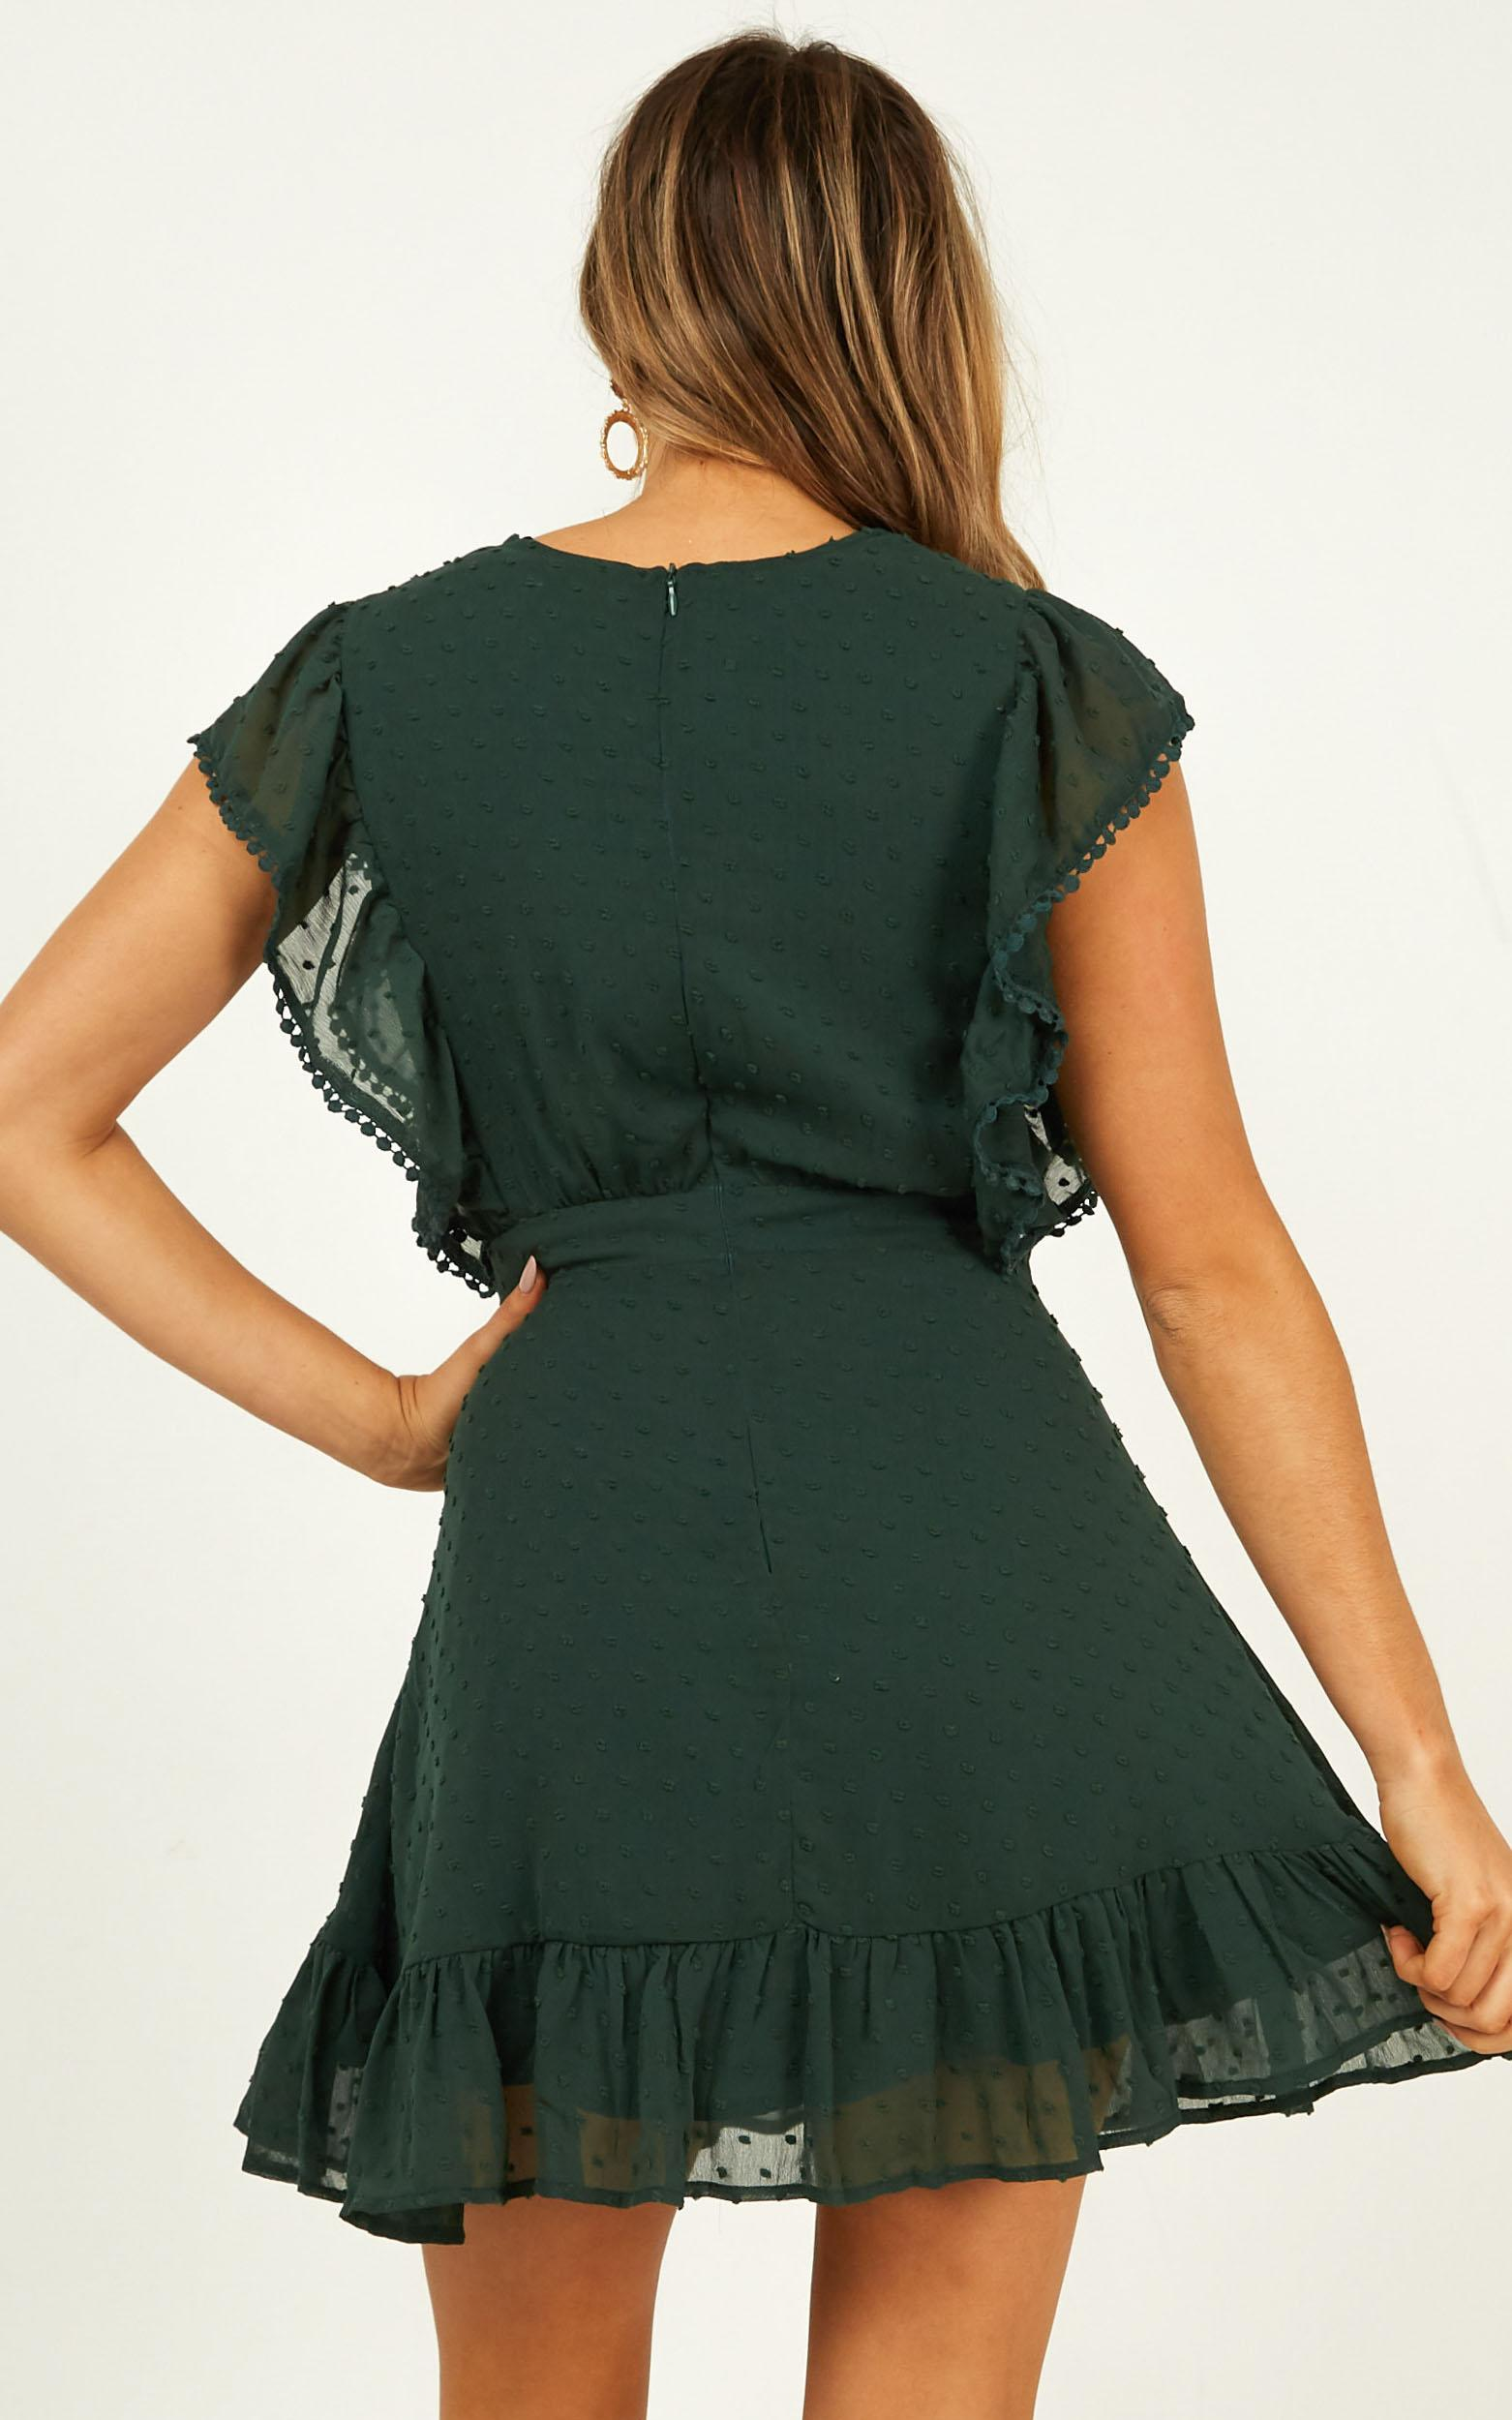 Living In the Moment Dress in emerald - 14 (XL), Green, hi-res image number null